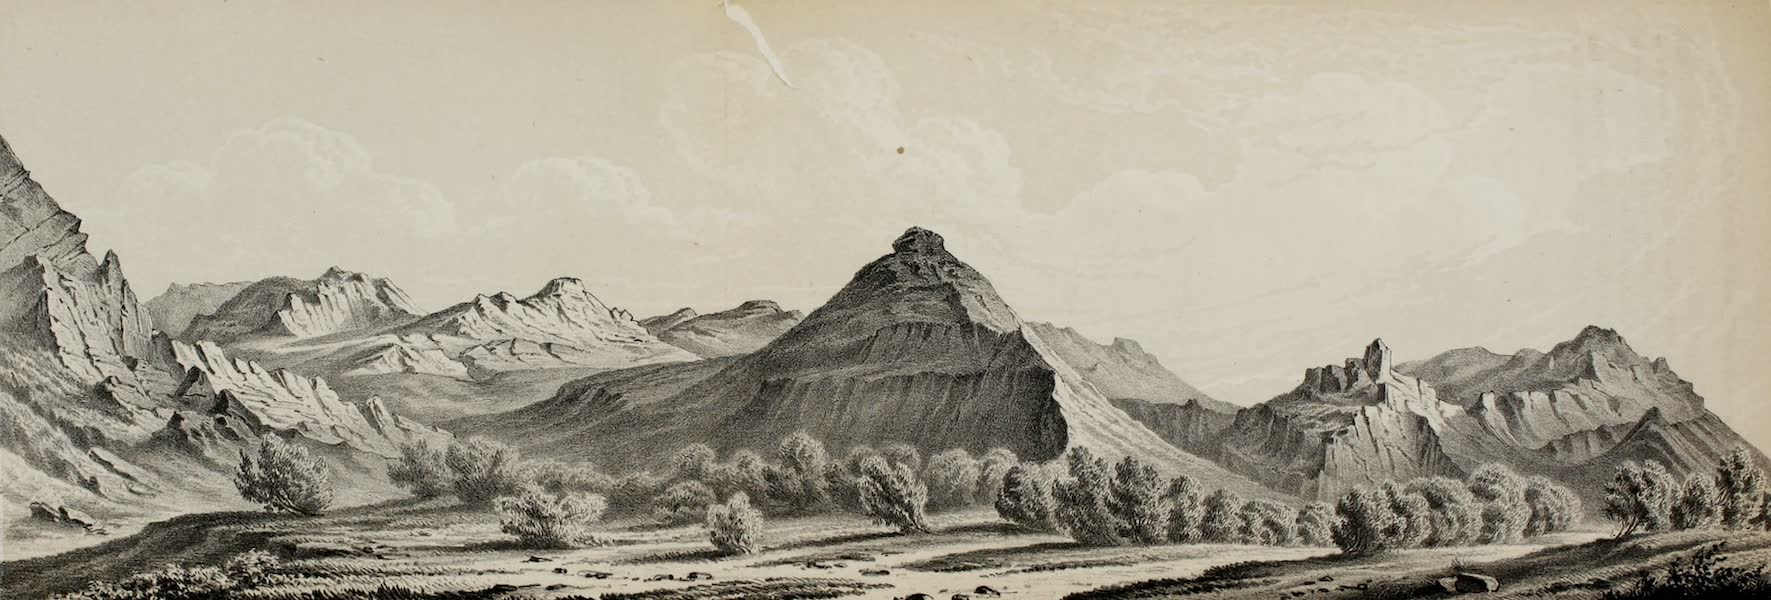 Exploration and Survey of the Valley of the Great Salt Lake of Utah - View from Strong's Knob (1852)